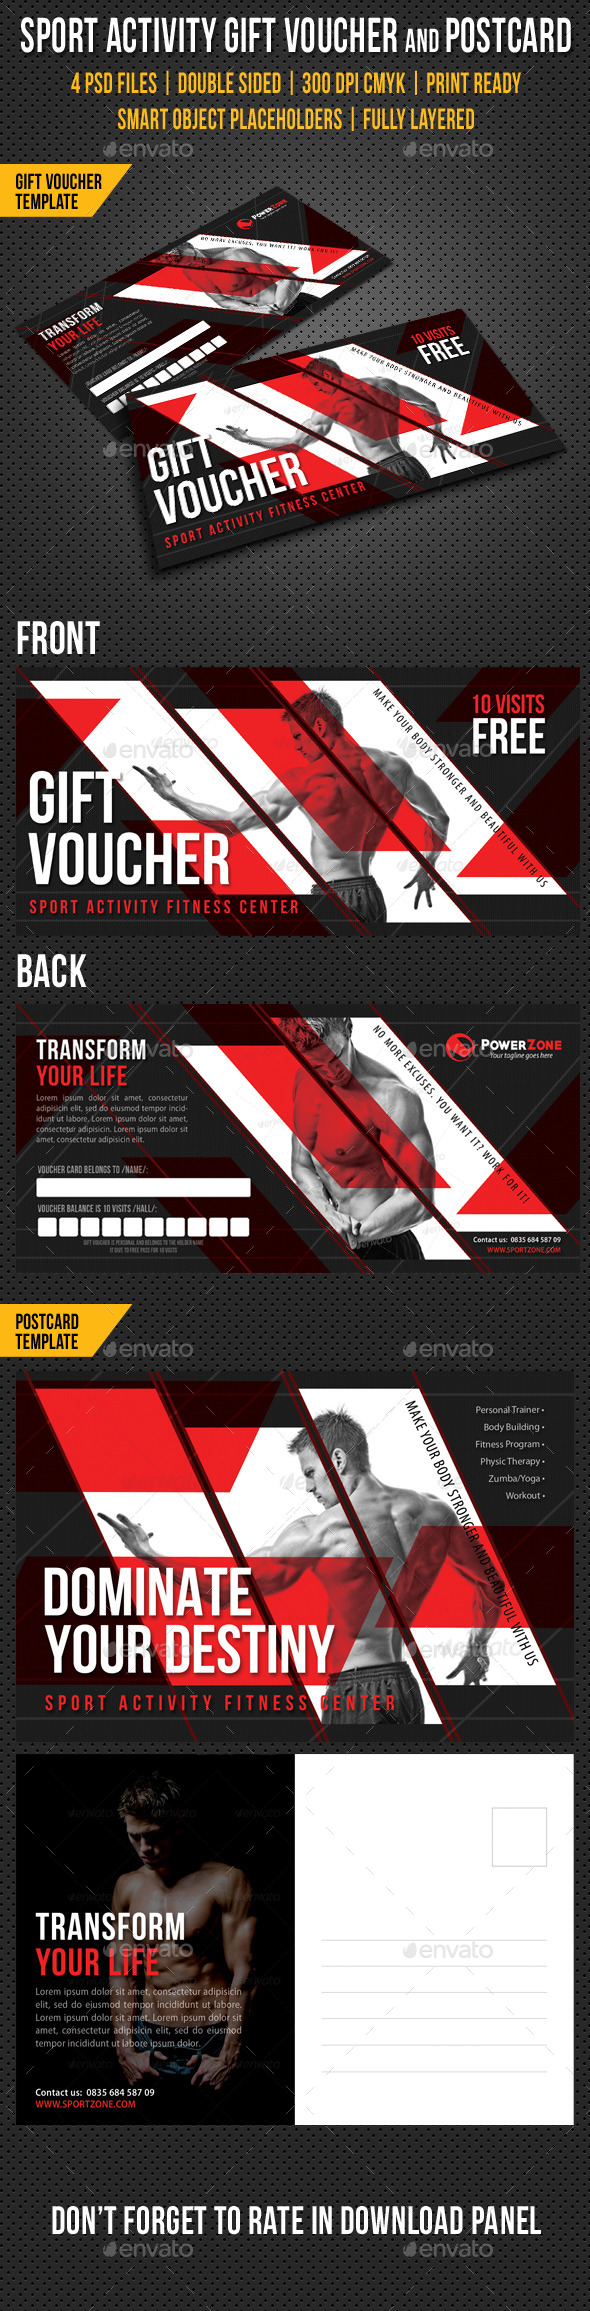 Sport Activity Gift Voucher and Postcard V02 - Cards & Invites Print Templates